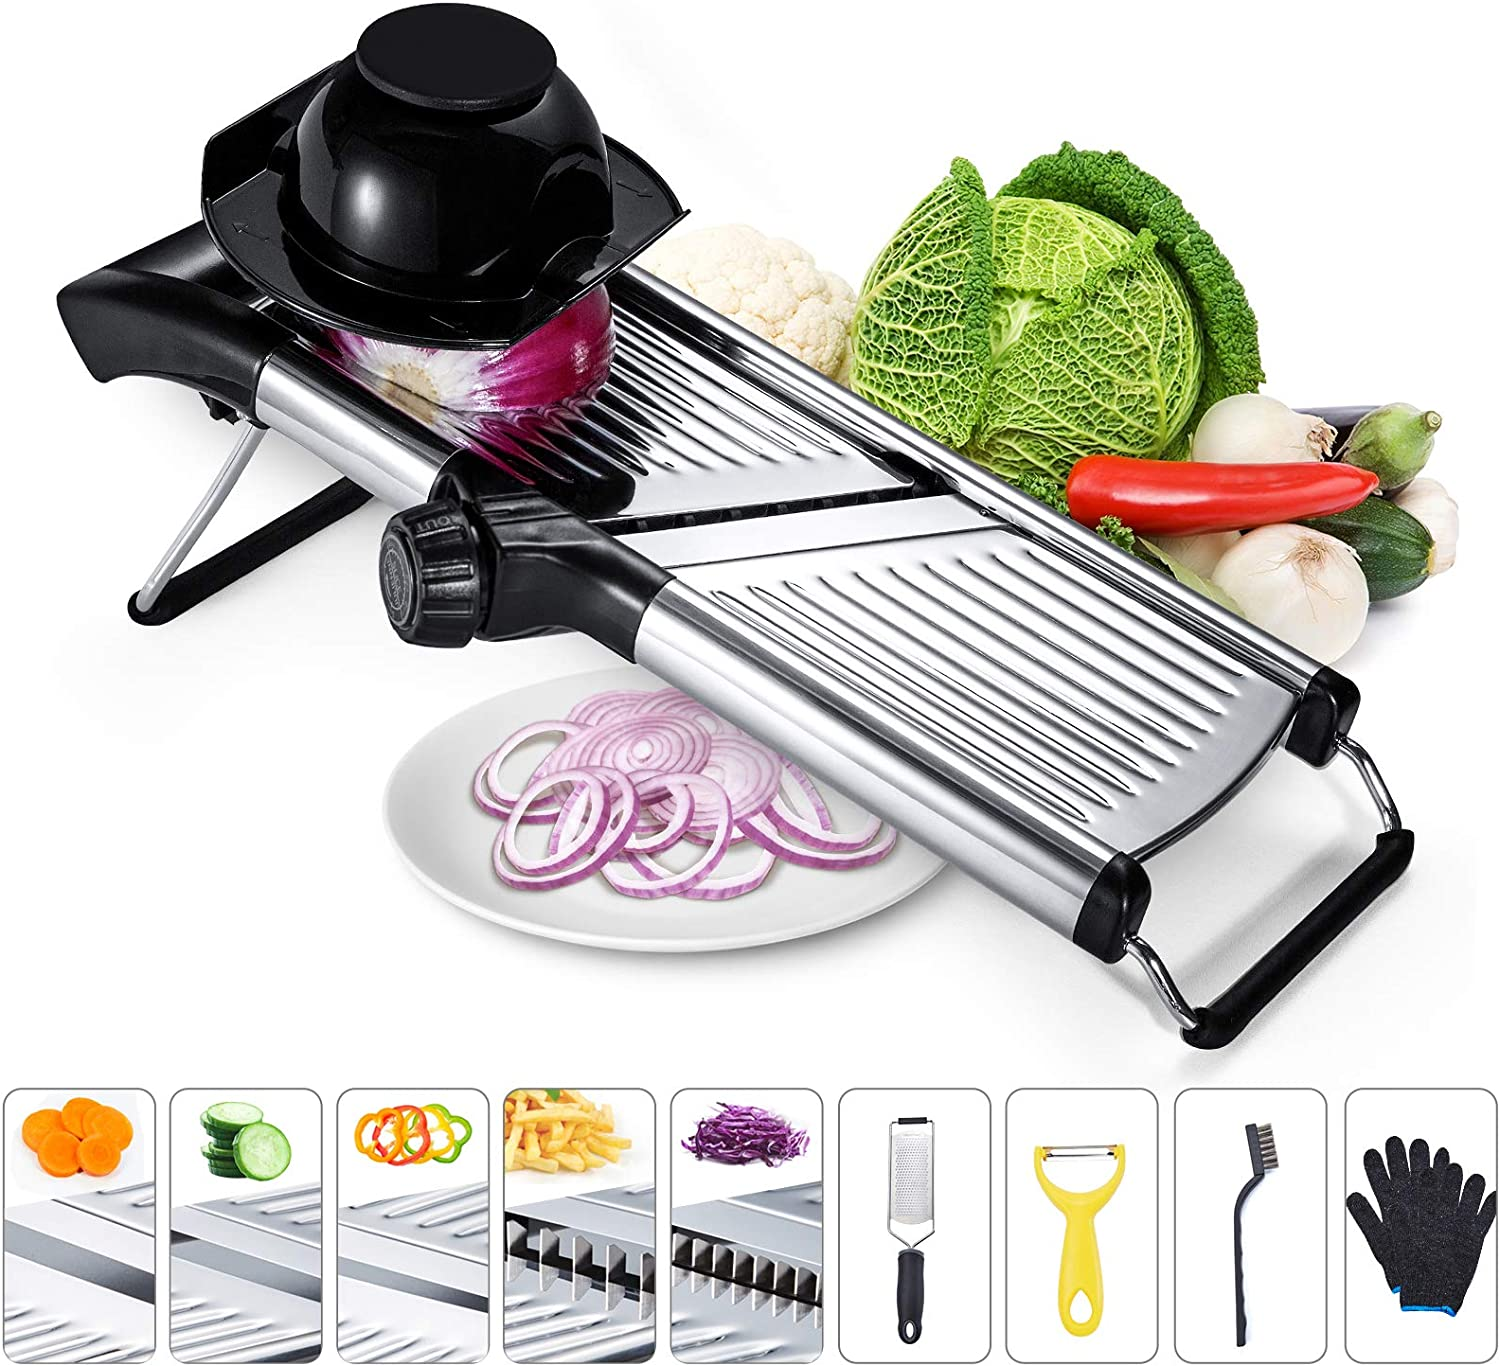 Adjustable Mandoline Food Slicer Stainless Steel Kitchen Food Cutter and Chopper for Vegetable Onion Potato Chip French Fry Julienne Slicer, Come with Guard Gloves Cheese Grater Peeler and Wire Brush